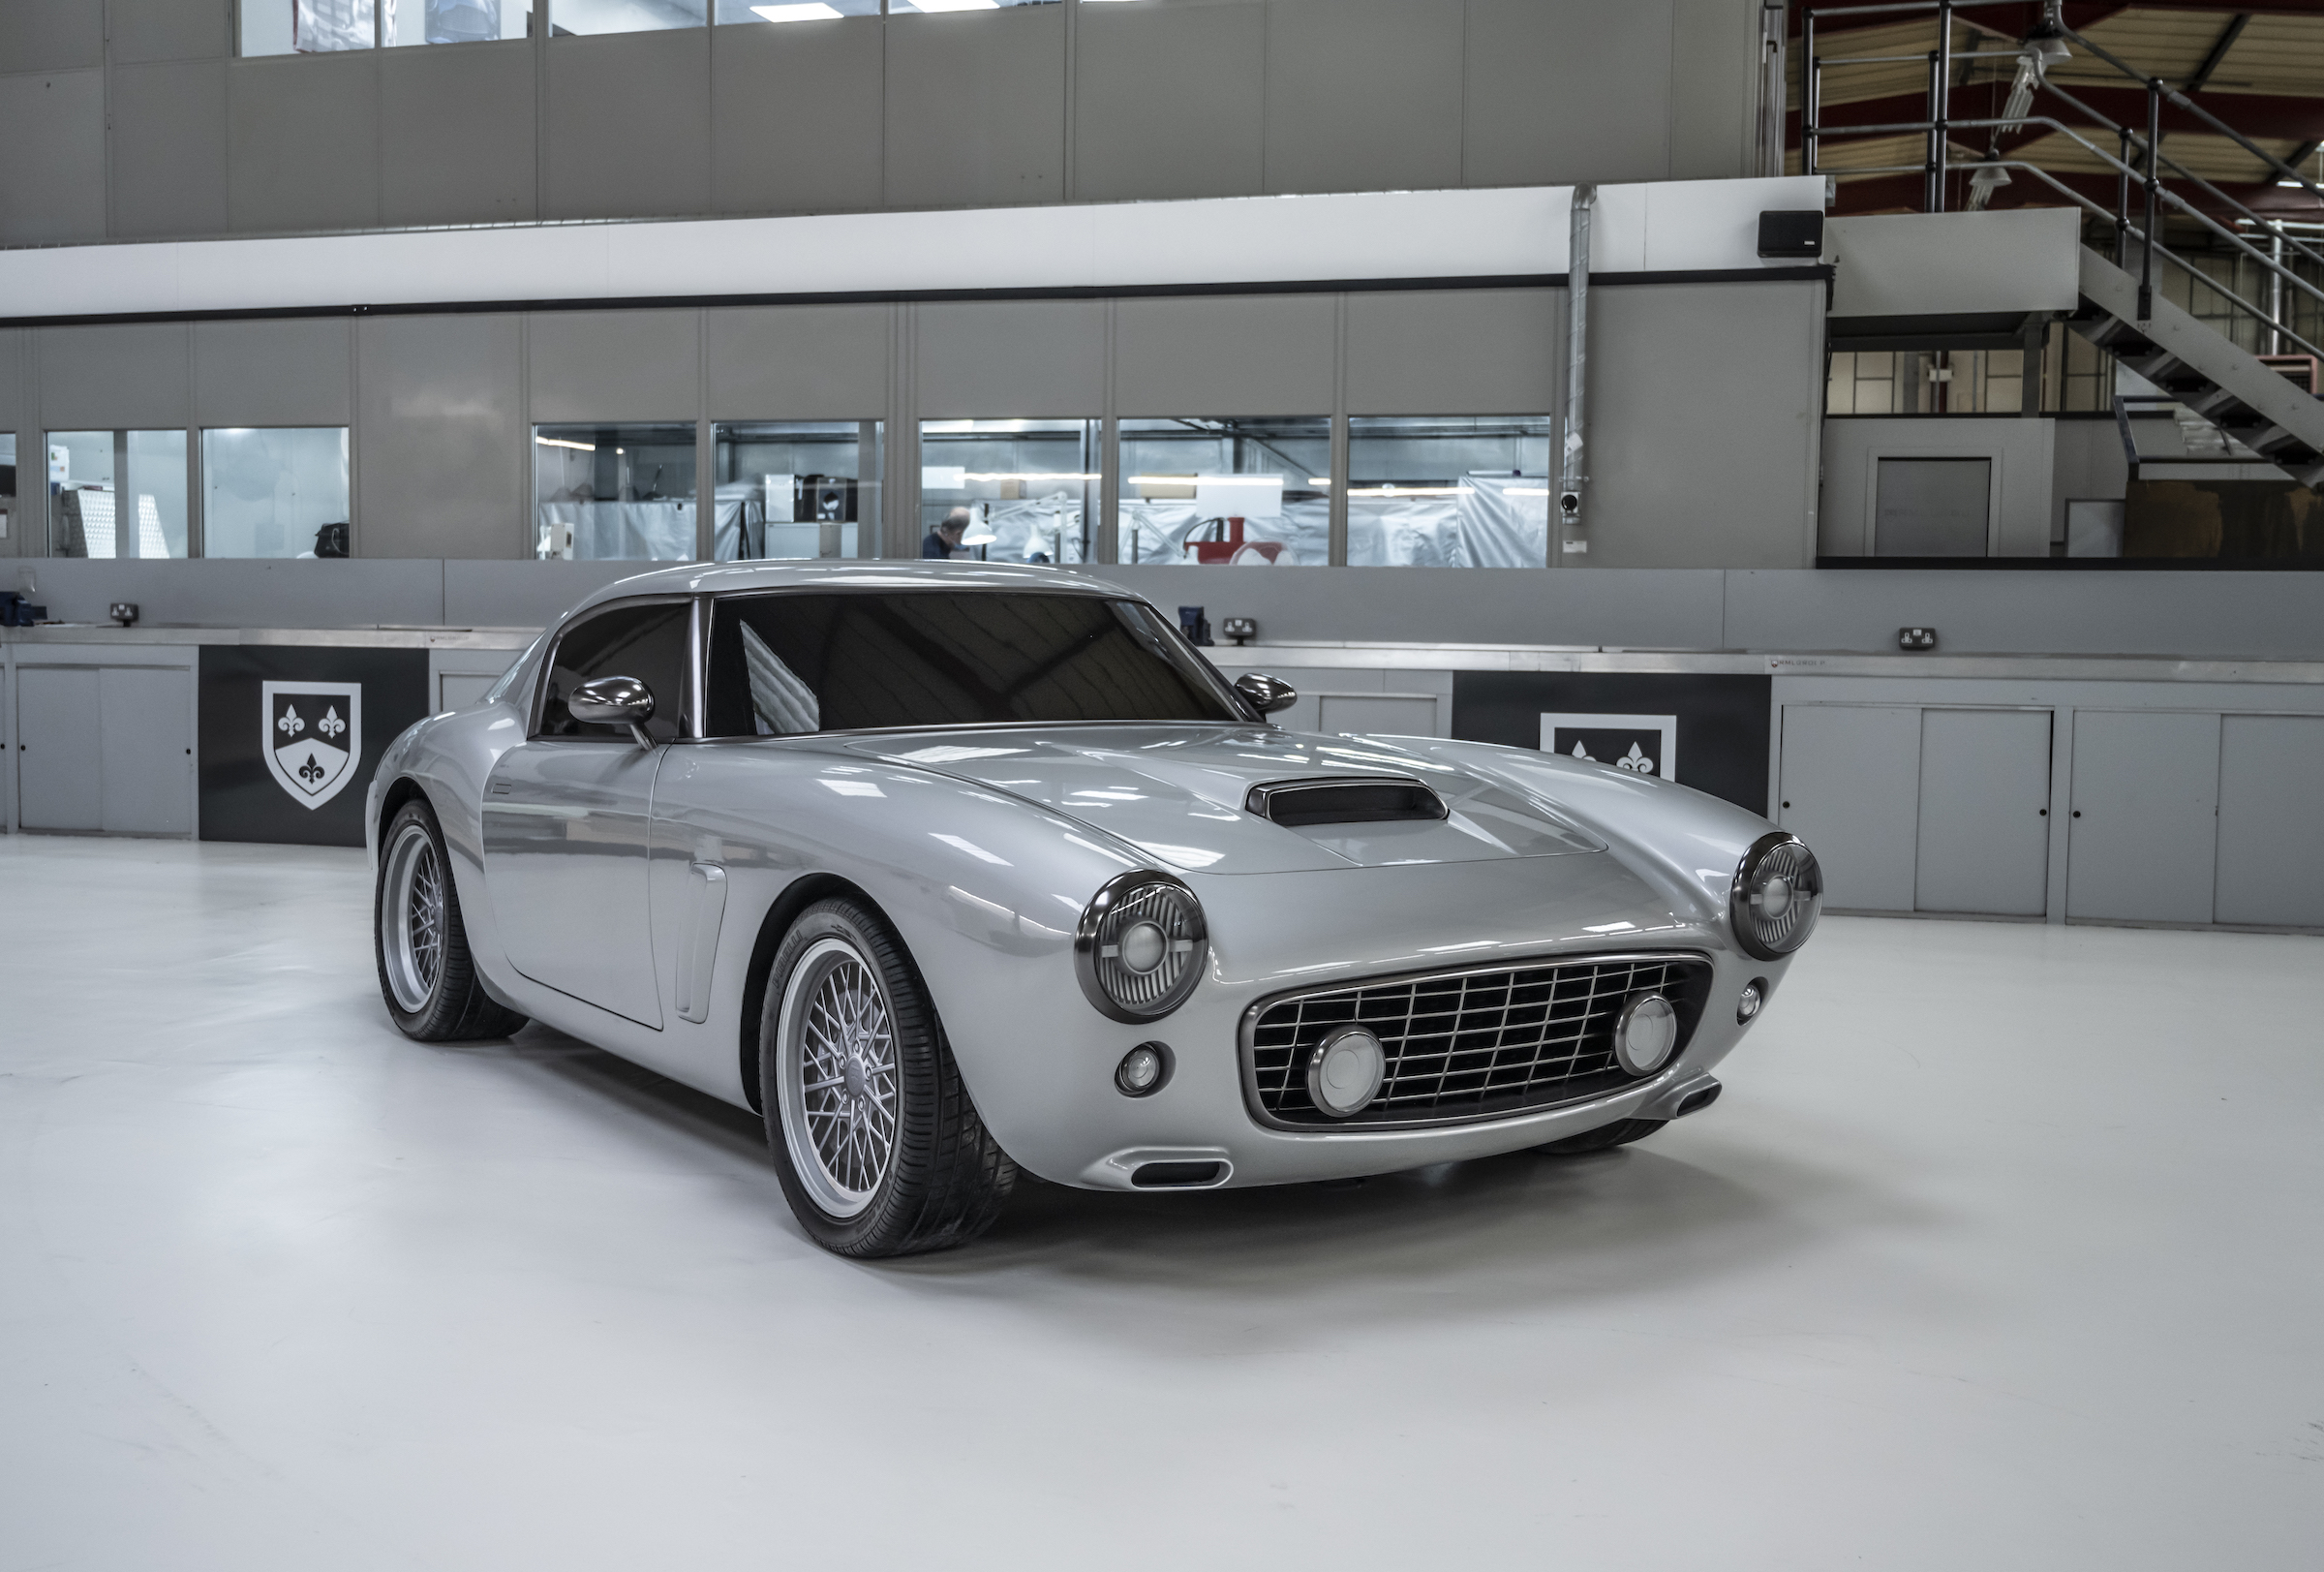 Still want that supercar? Up close with the new RML Short Wheelbase – the GT inspired by the Ferrari 250 SWB